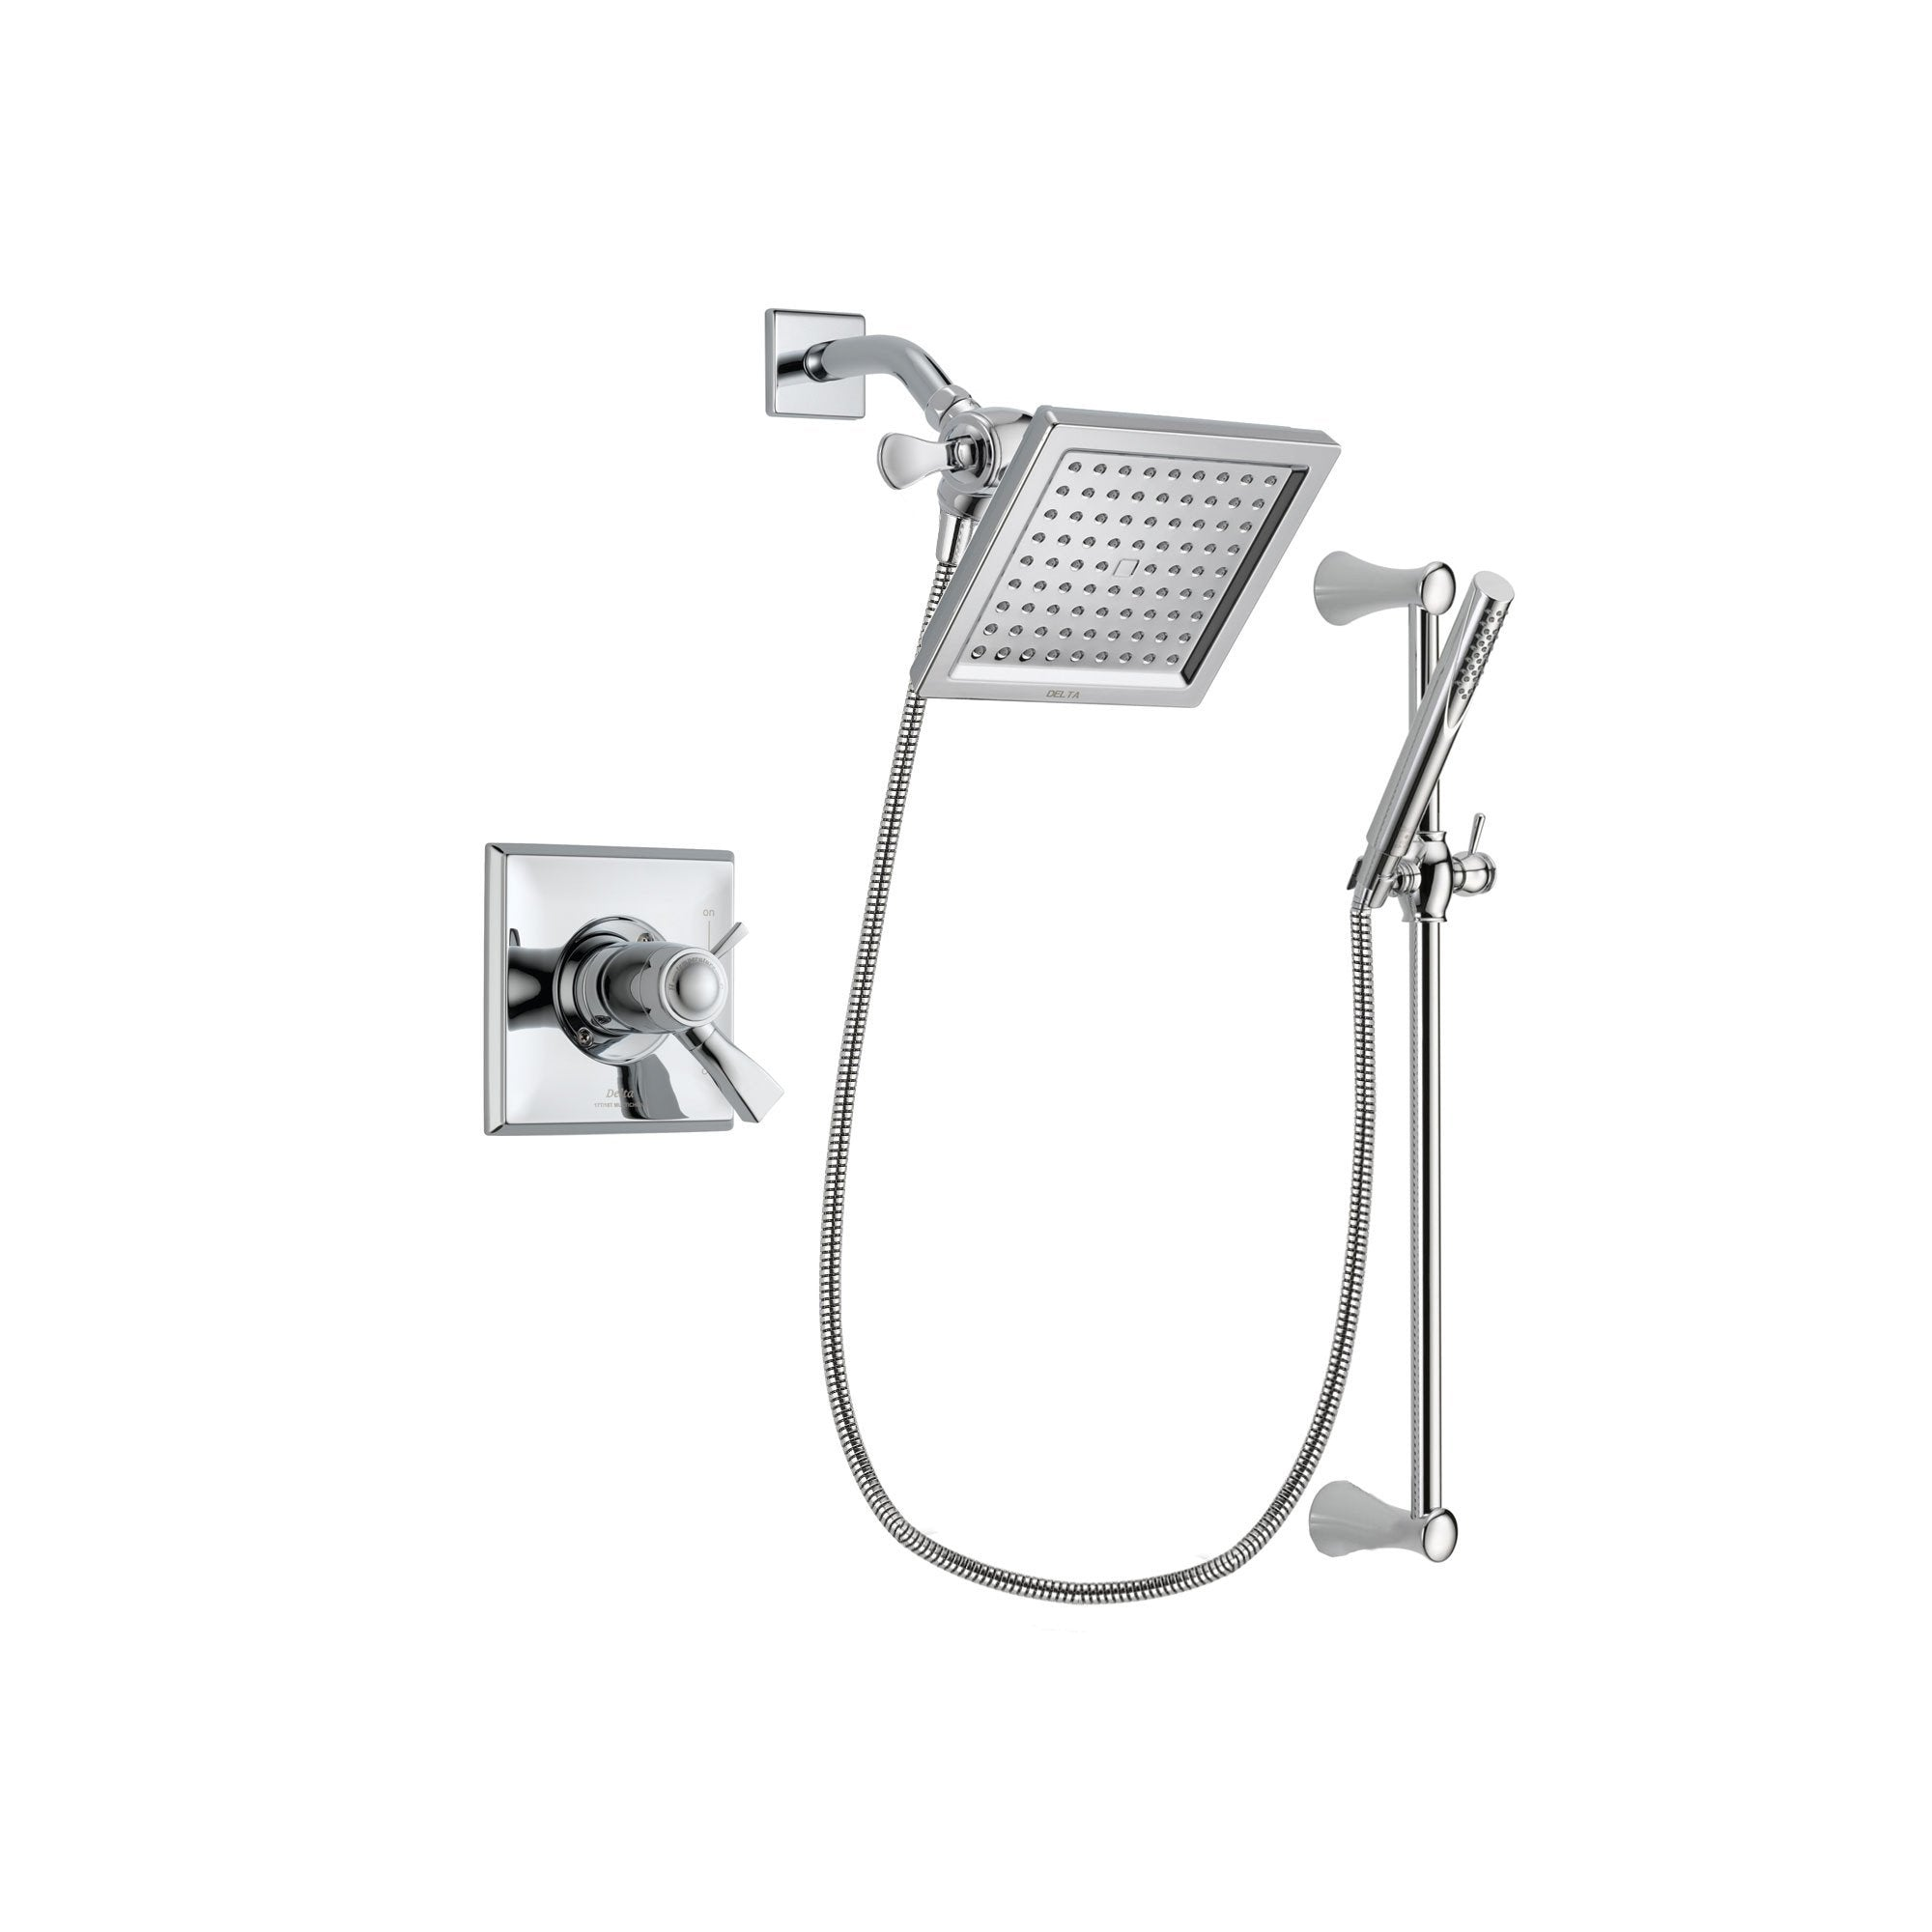 Delta Dryden Chrome Shower Faucet System w/ Shower Head and Hand Shower DSP0257V